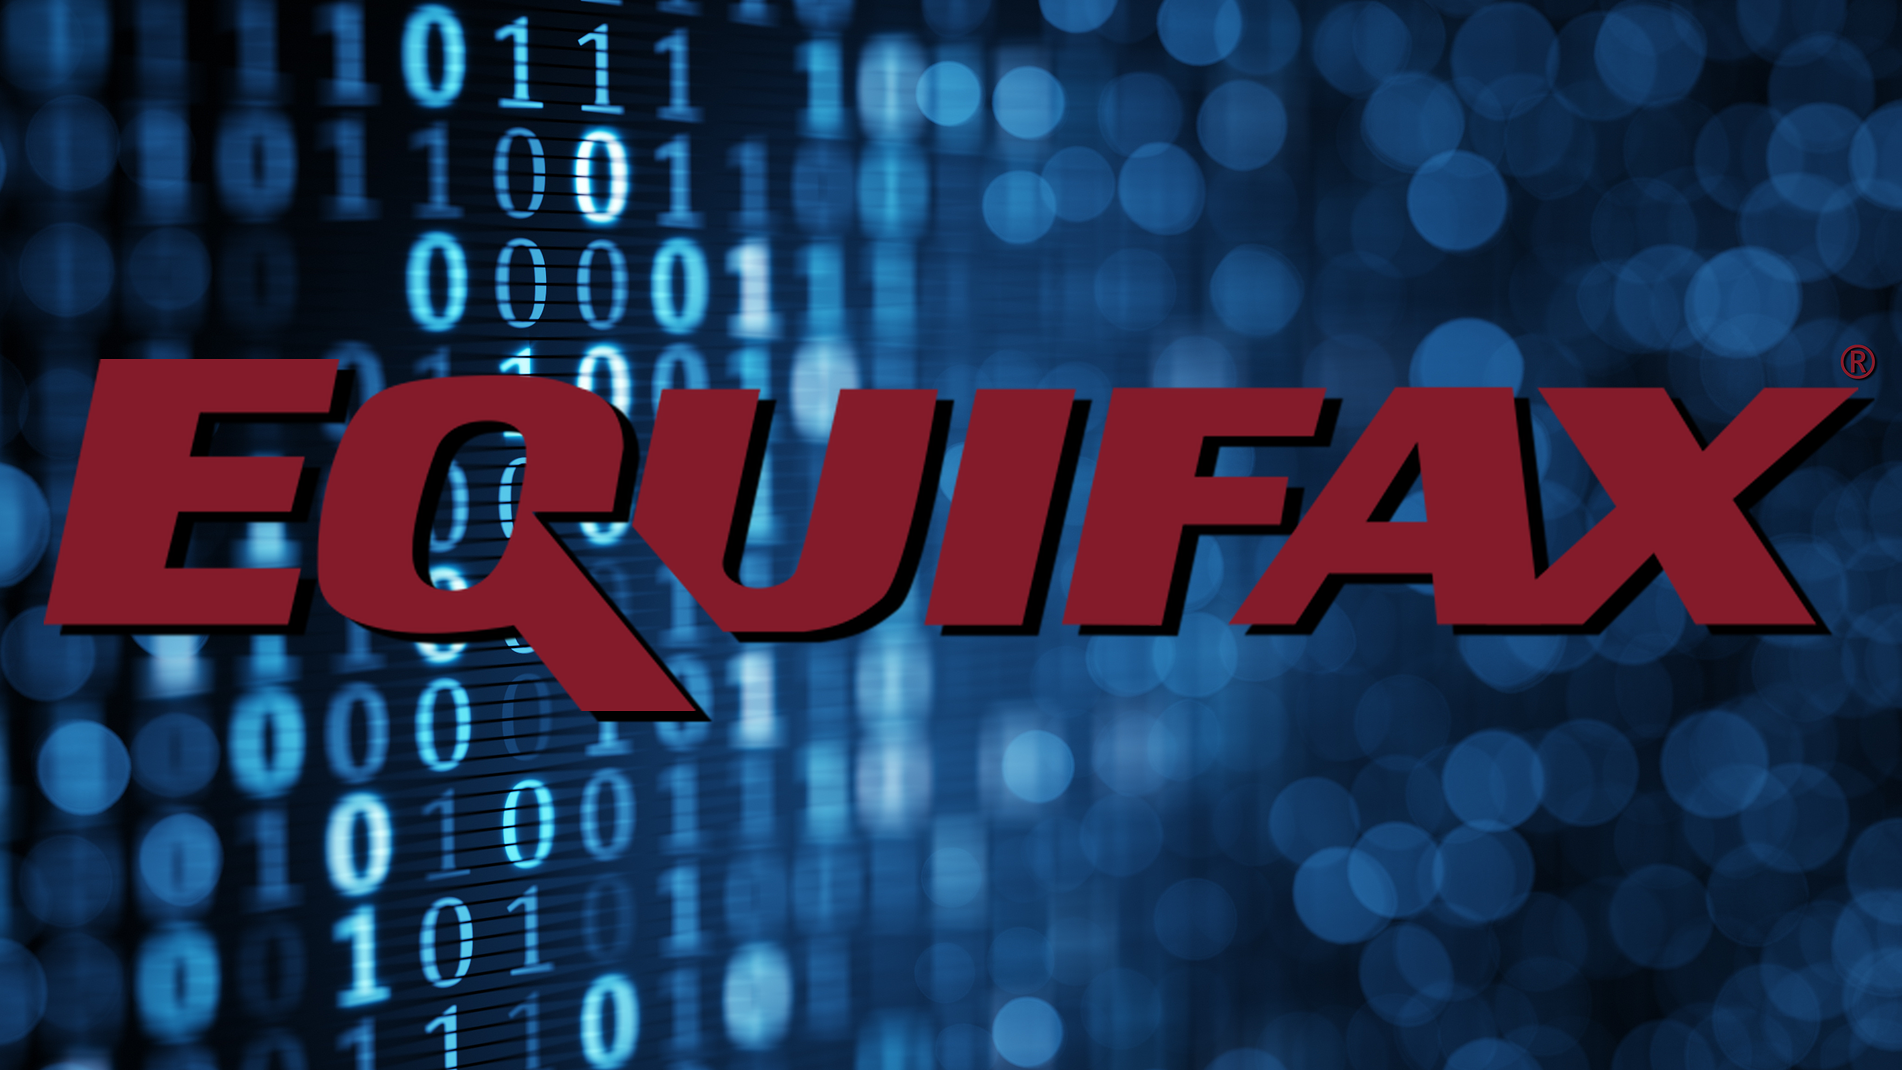 The Equifax Breach.